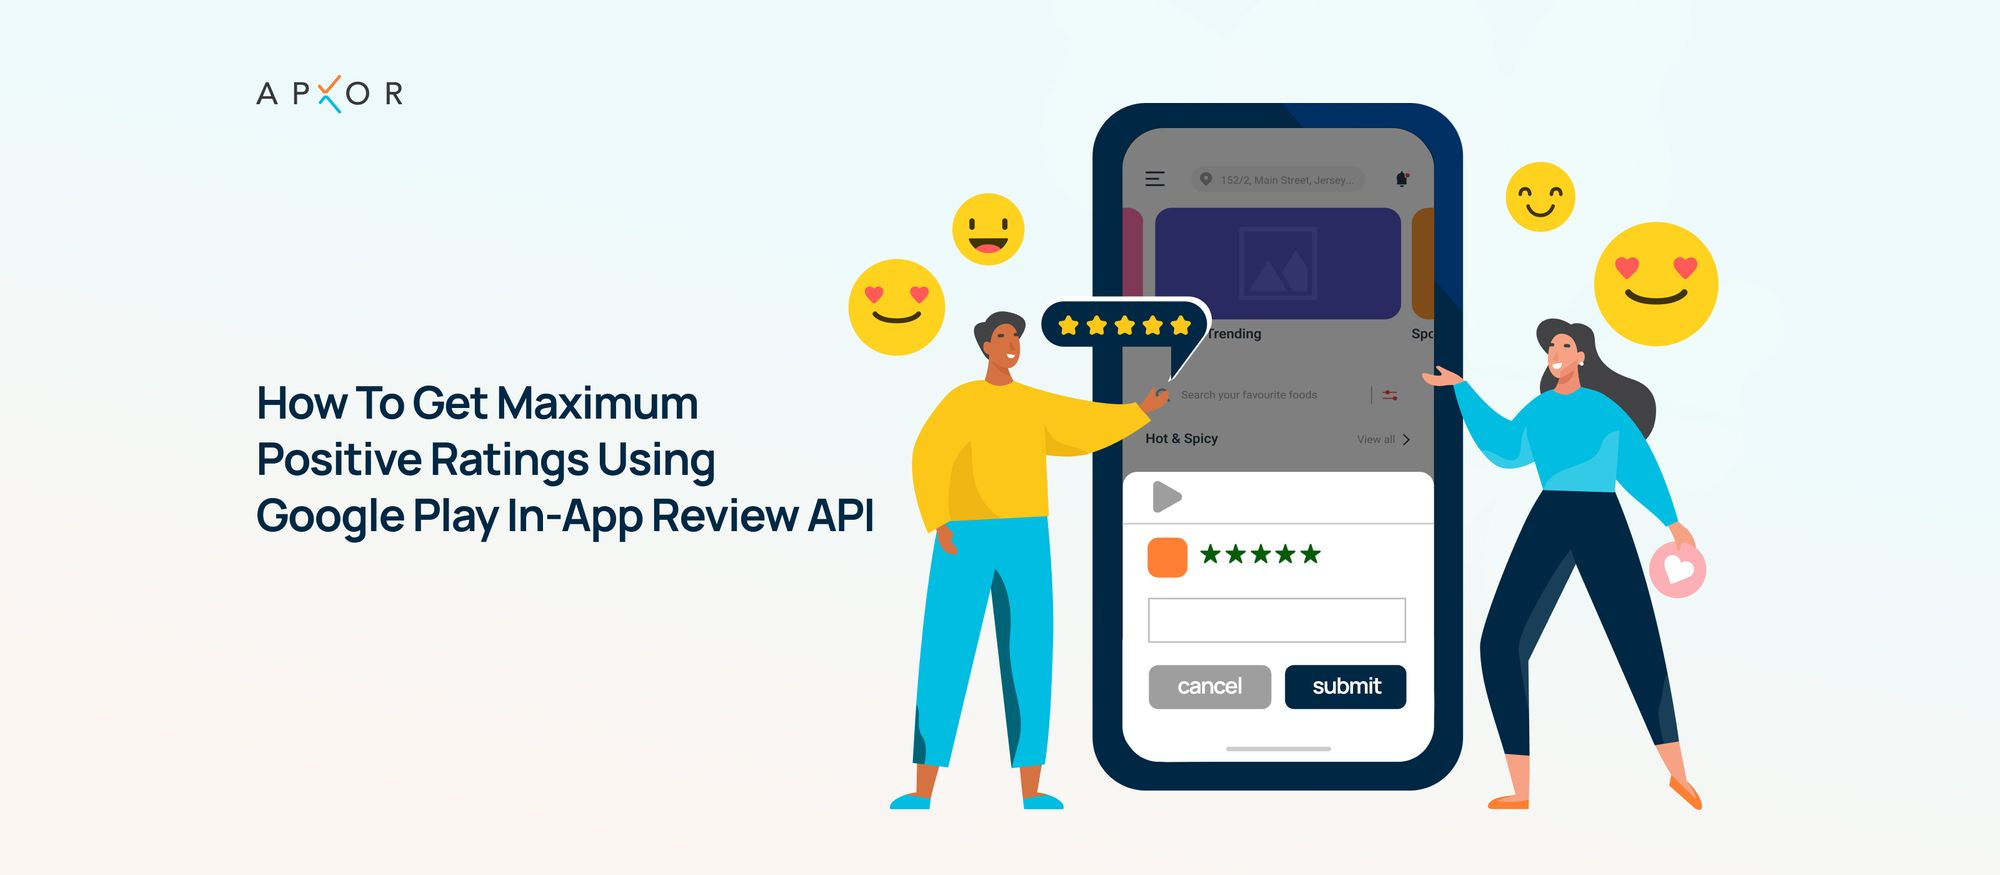 How To Improve App Ratings By Using Google Play In-App Review API